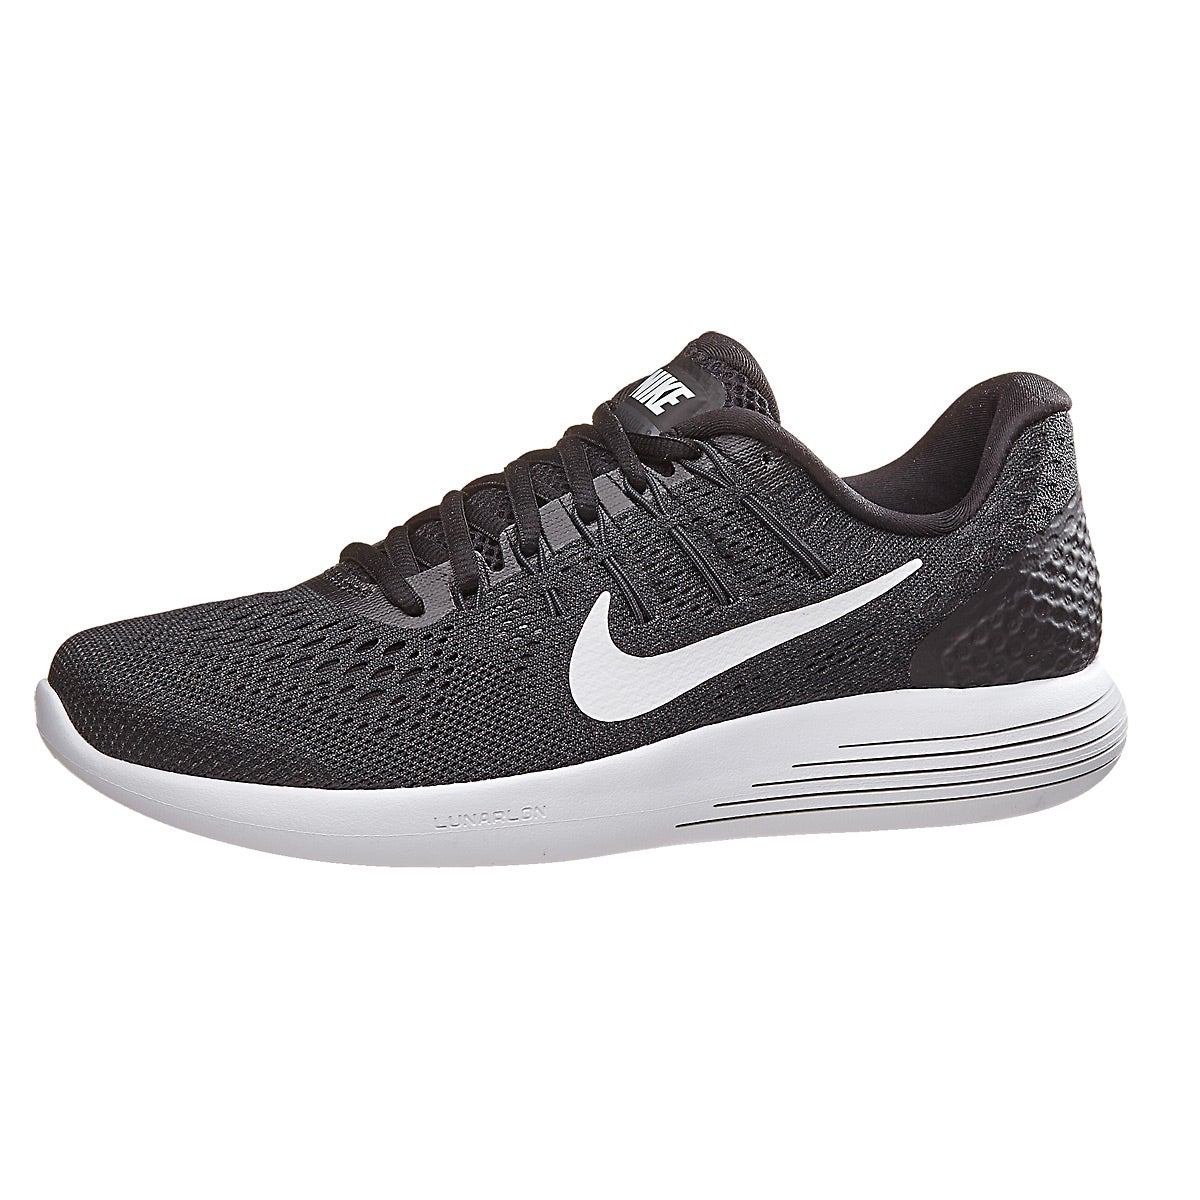 2ed3311a73c9d ... wholesale nike lunarglide 8 womens shoes black white anthraci 360 view  running warehouse. 46d88 29dff